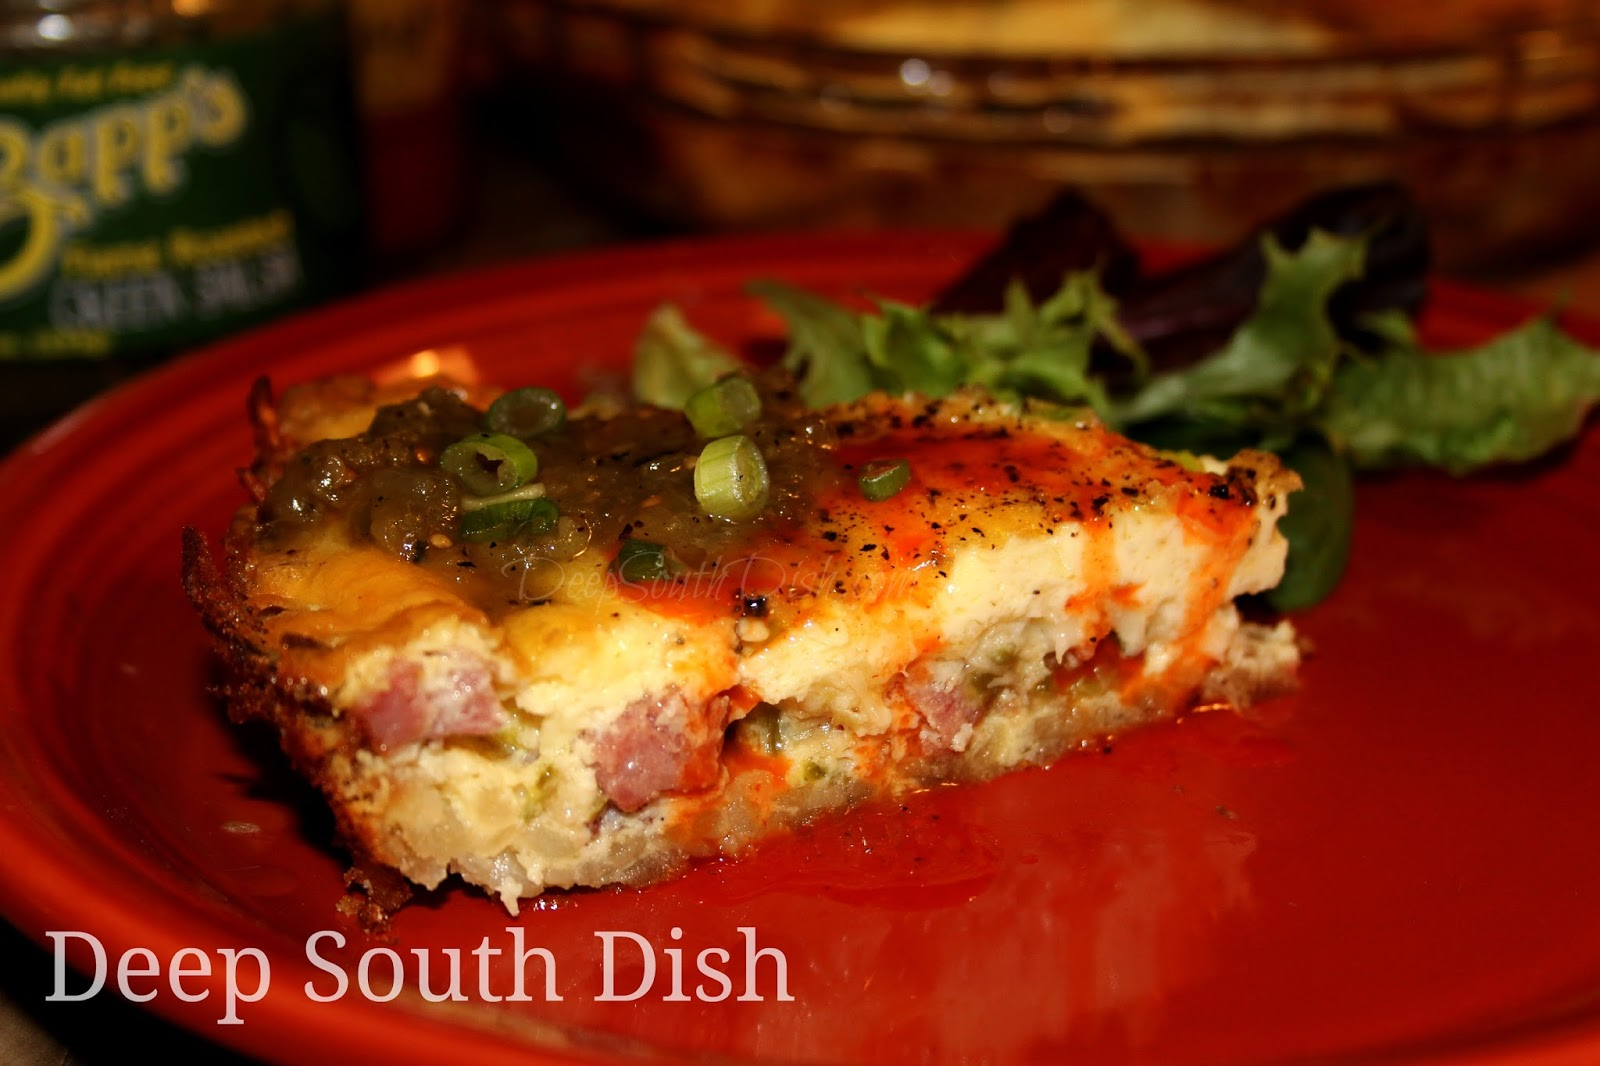 ... quiche with hashbrown crusted quiche with hashbrown crusted quiche